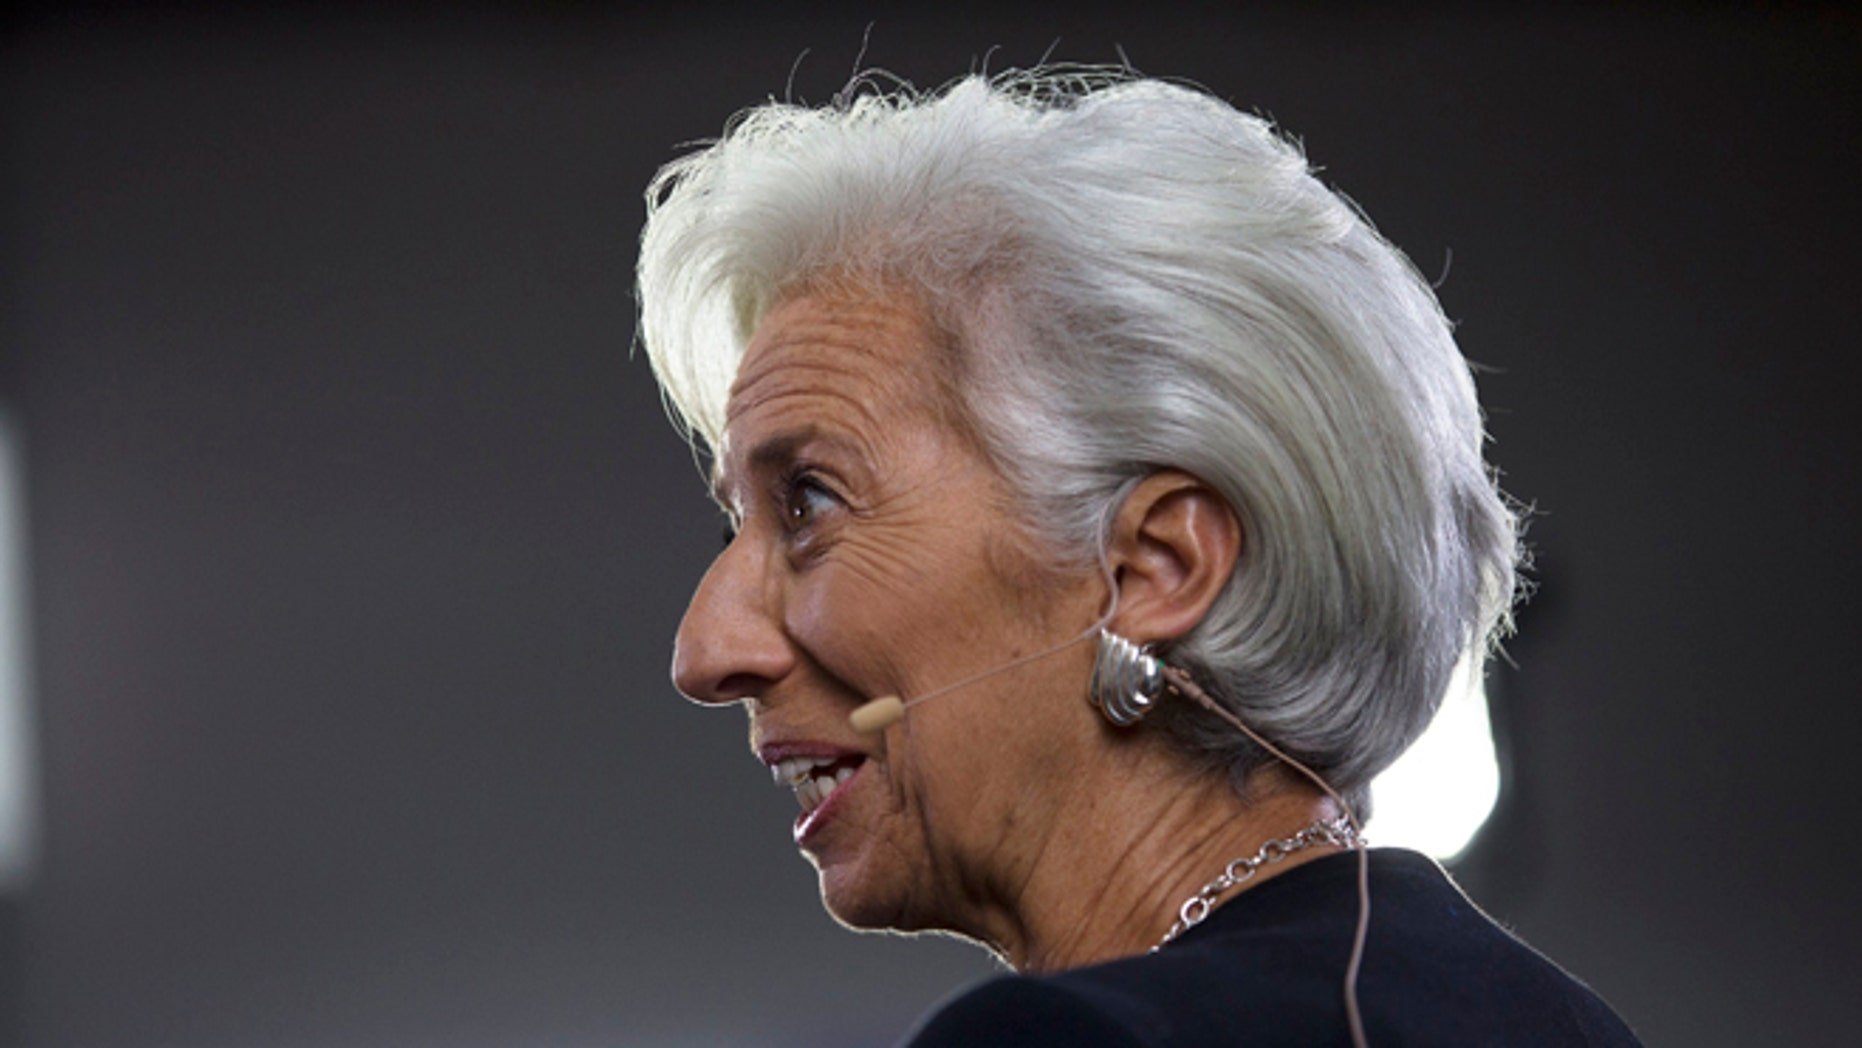 IMF holds annual meeting in Latin America for first time